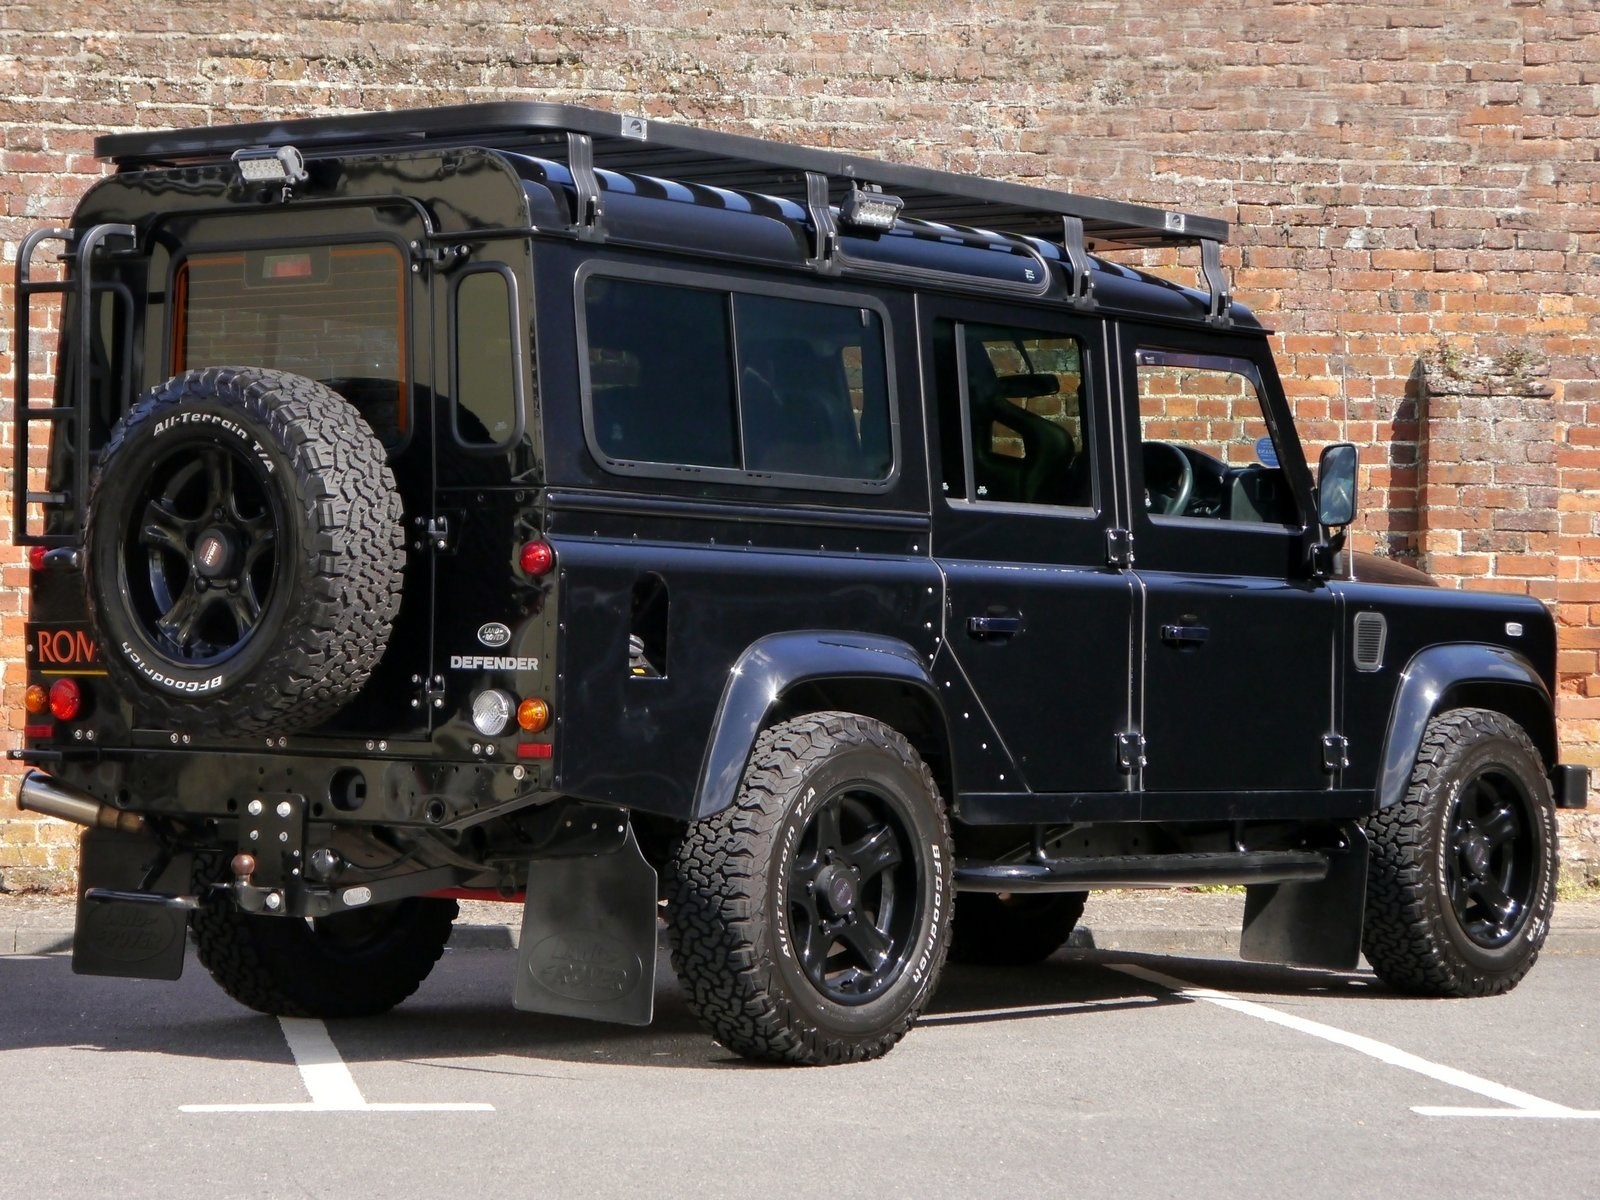 Land Rover Defender 110 XS 2.2D - Urban Automotive - Loads of ...